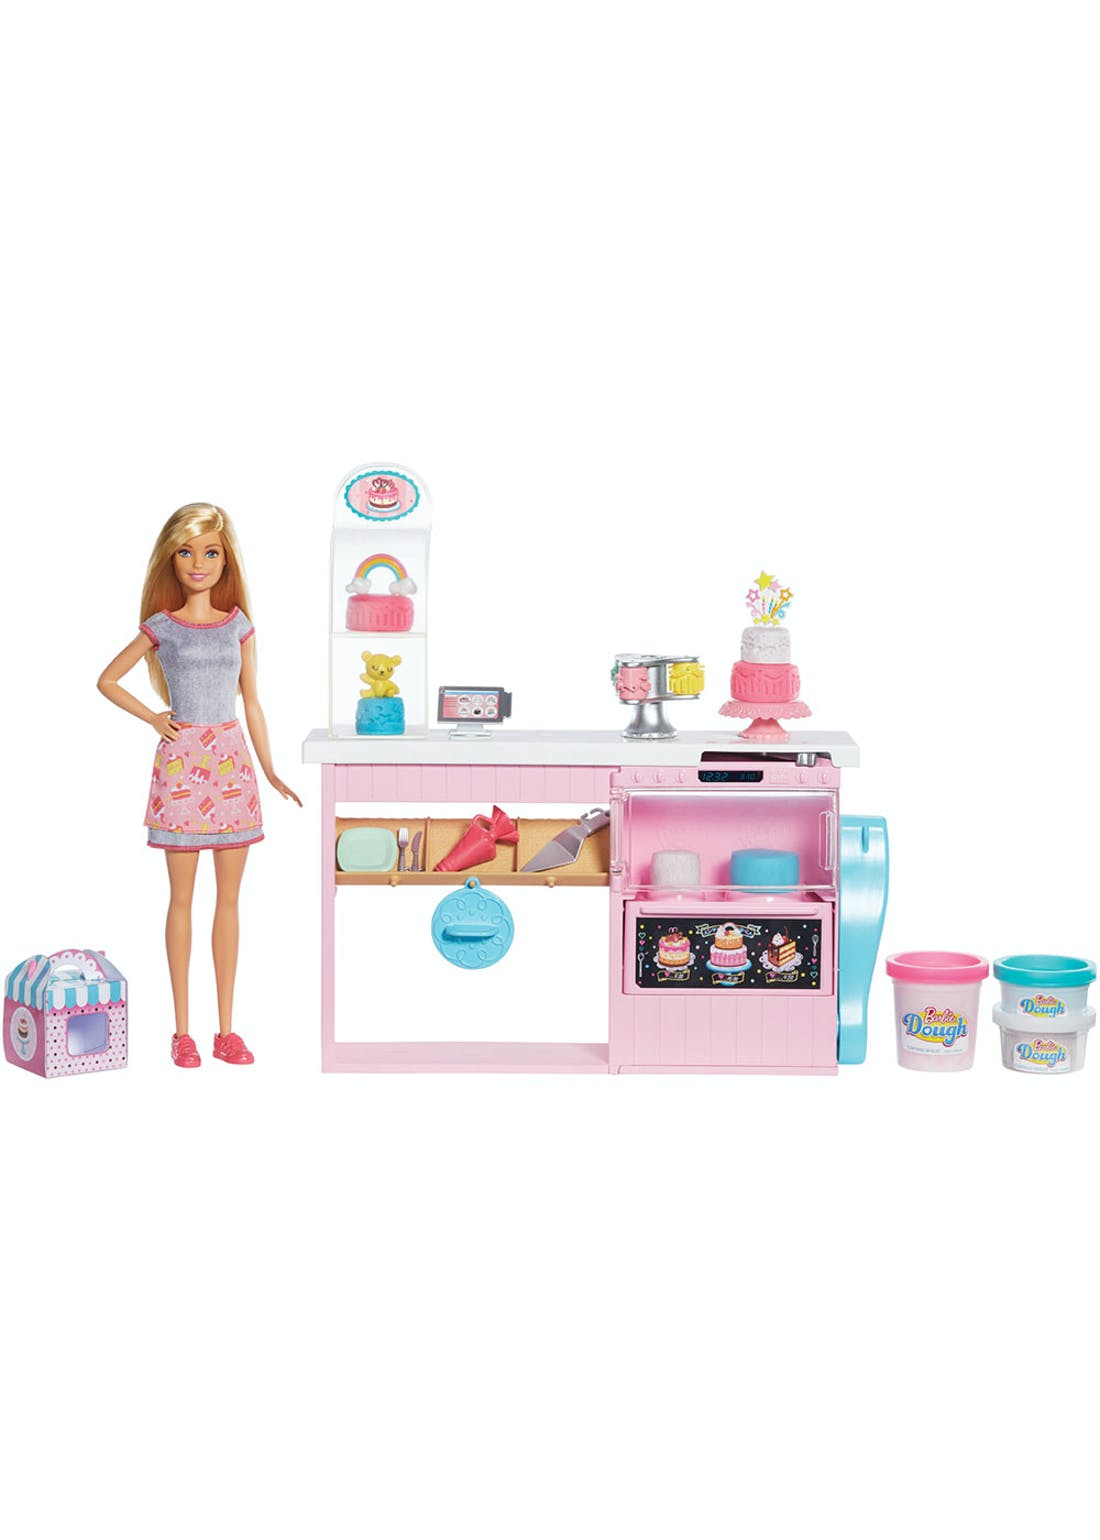 Barbie You Can Be Anything Cake Decorating Play Set (39.5cm x 32.5cm x 7.5cm)